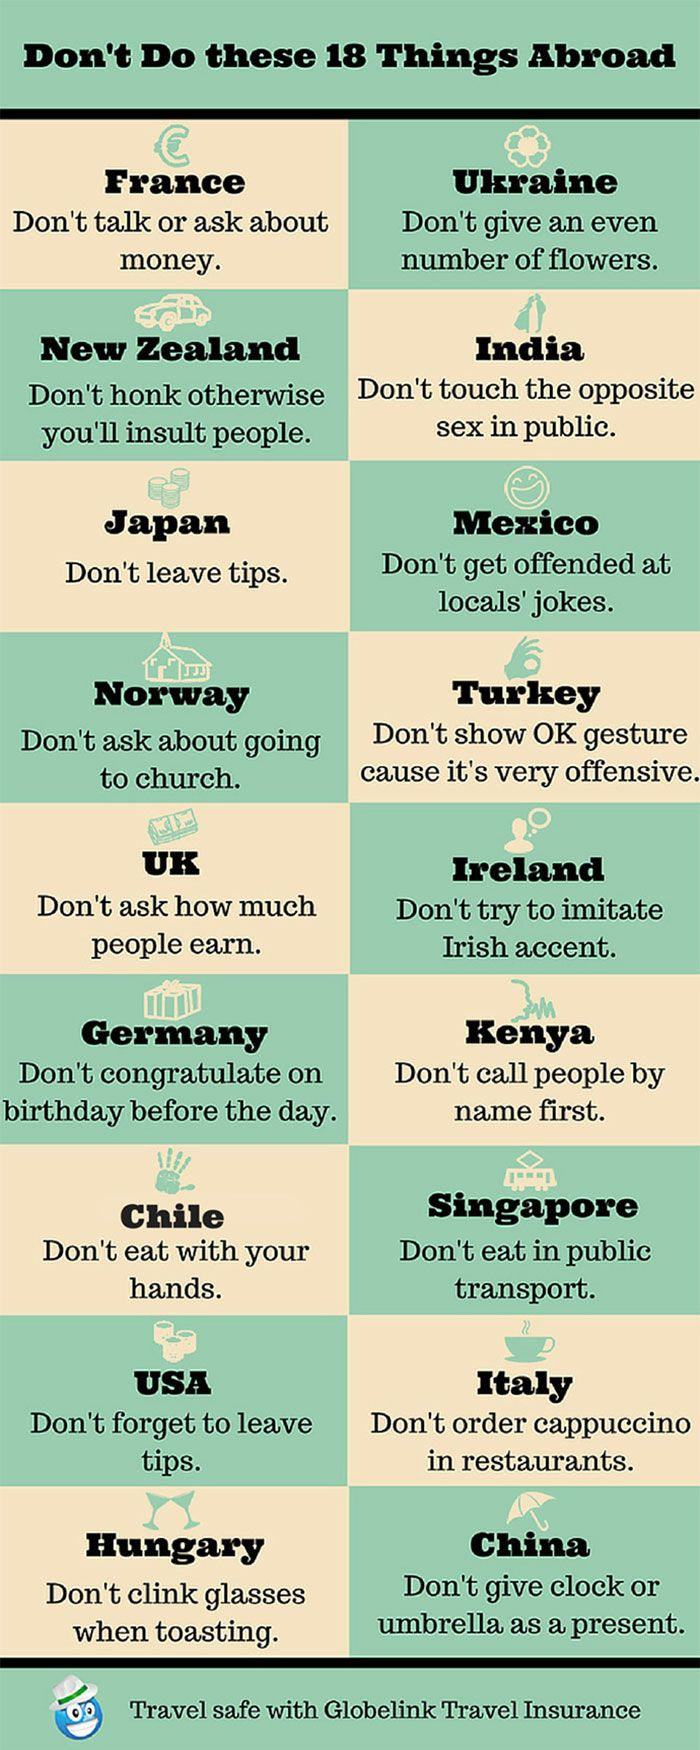 Tips Tips Guides Travelling 18 Do These Abroad Don't Travel Things Miscellaneous